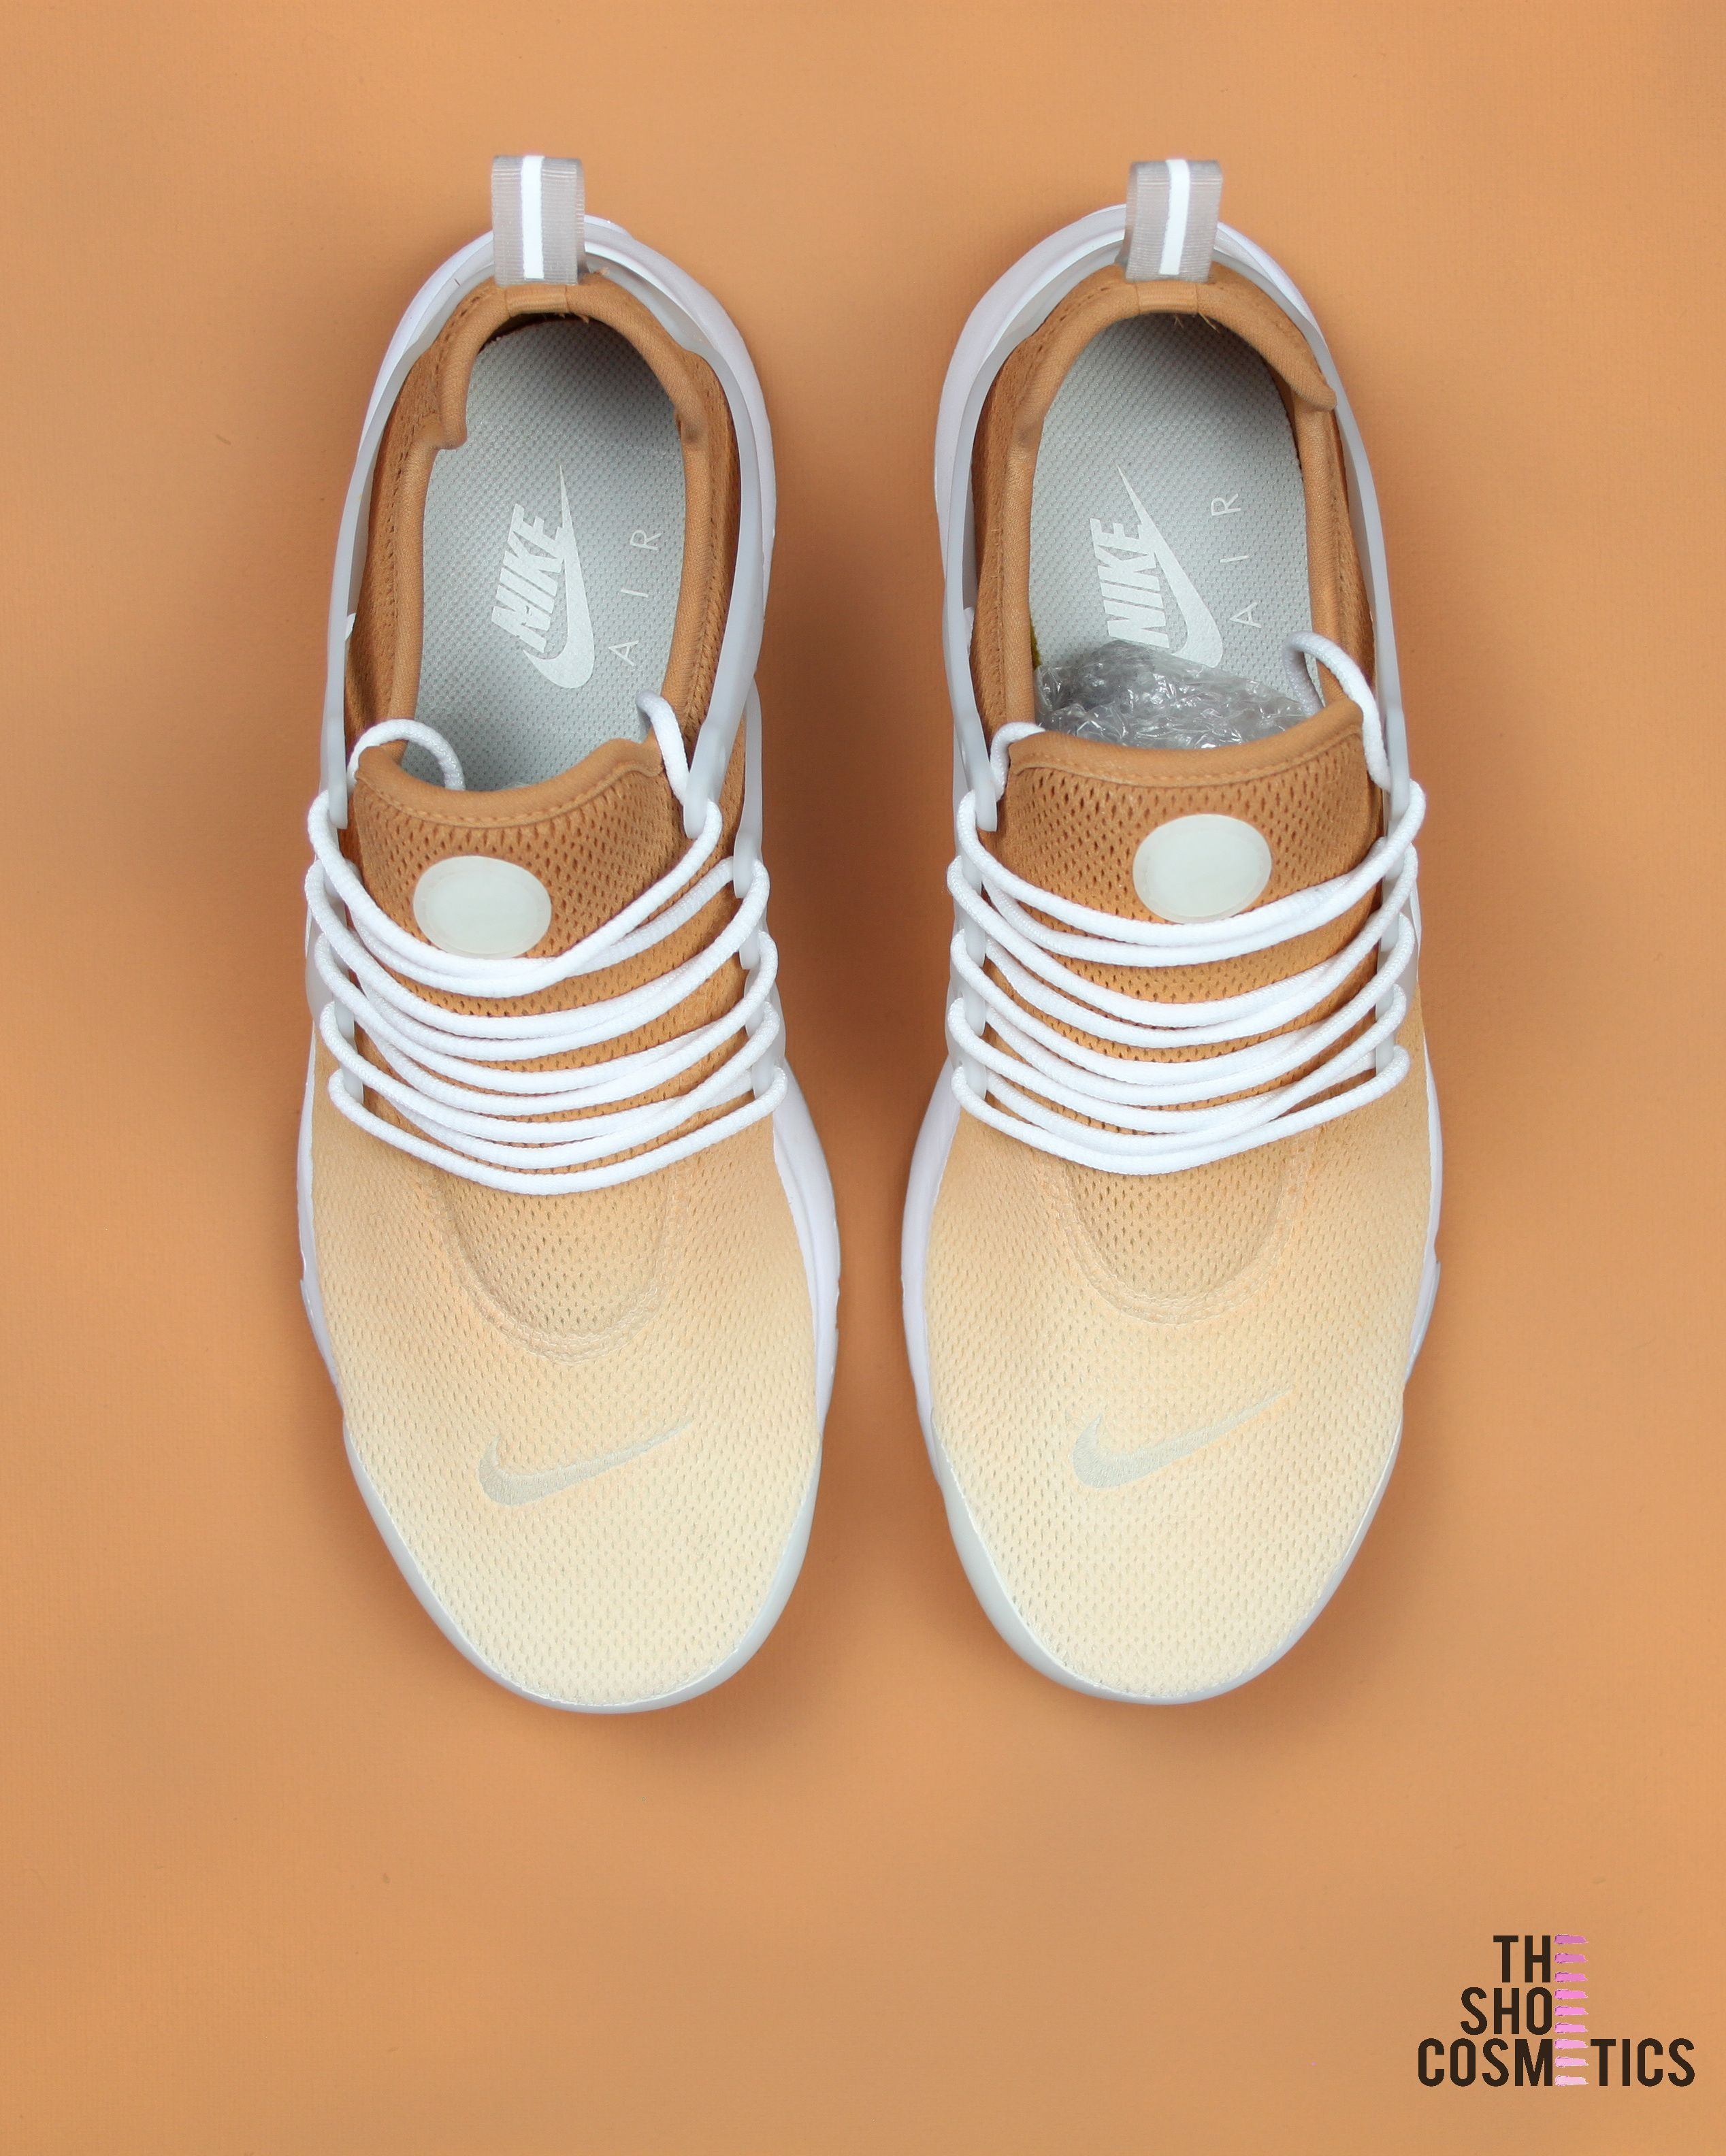 separation shoes 2a606 0f053 Explore our custom Nike Air Presto sneakers in this tan ombre design. If  you love the Nike Air Presto then these Custom Nike shoes are perfect for  you.